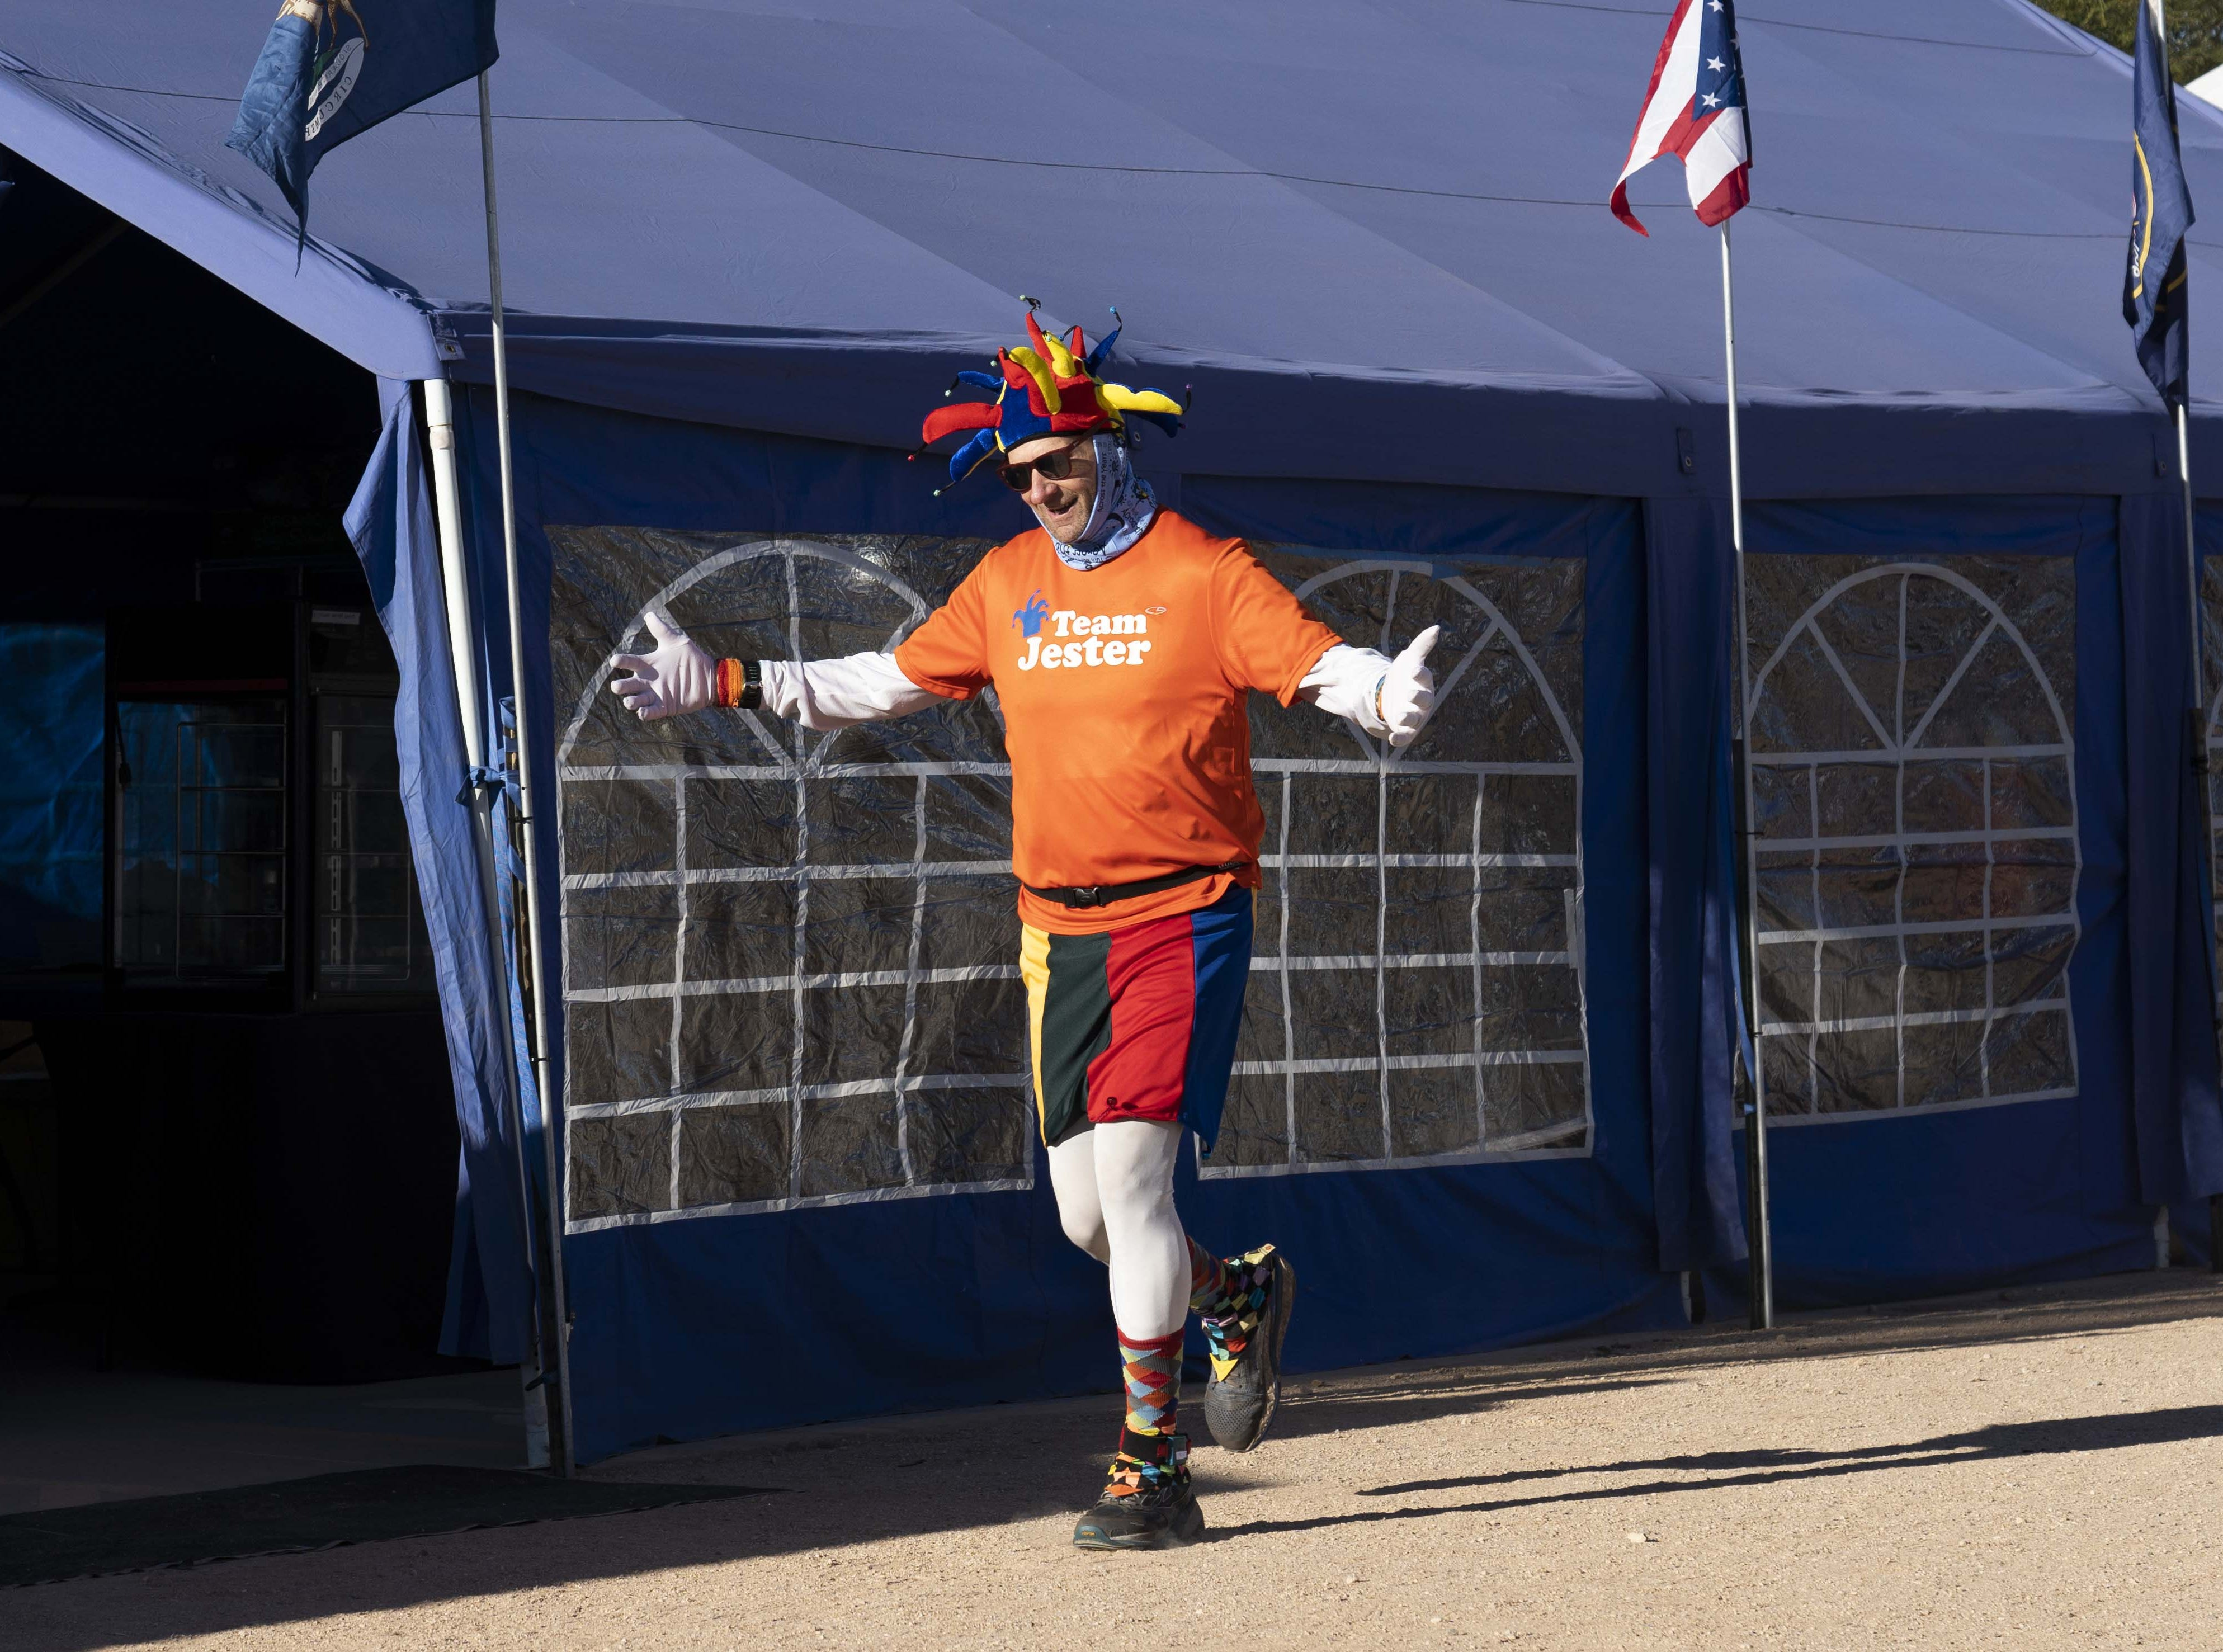 Ed Ettinghausen dressed as a jester to run the 2019 Across the Years ultramarathon at Camelback Ranch in Glendale, AZ.